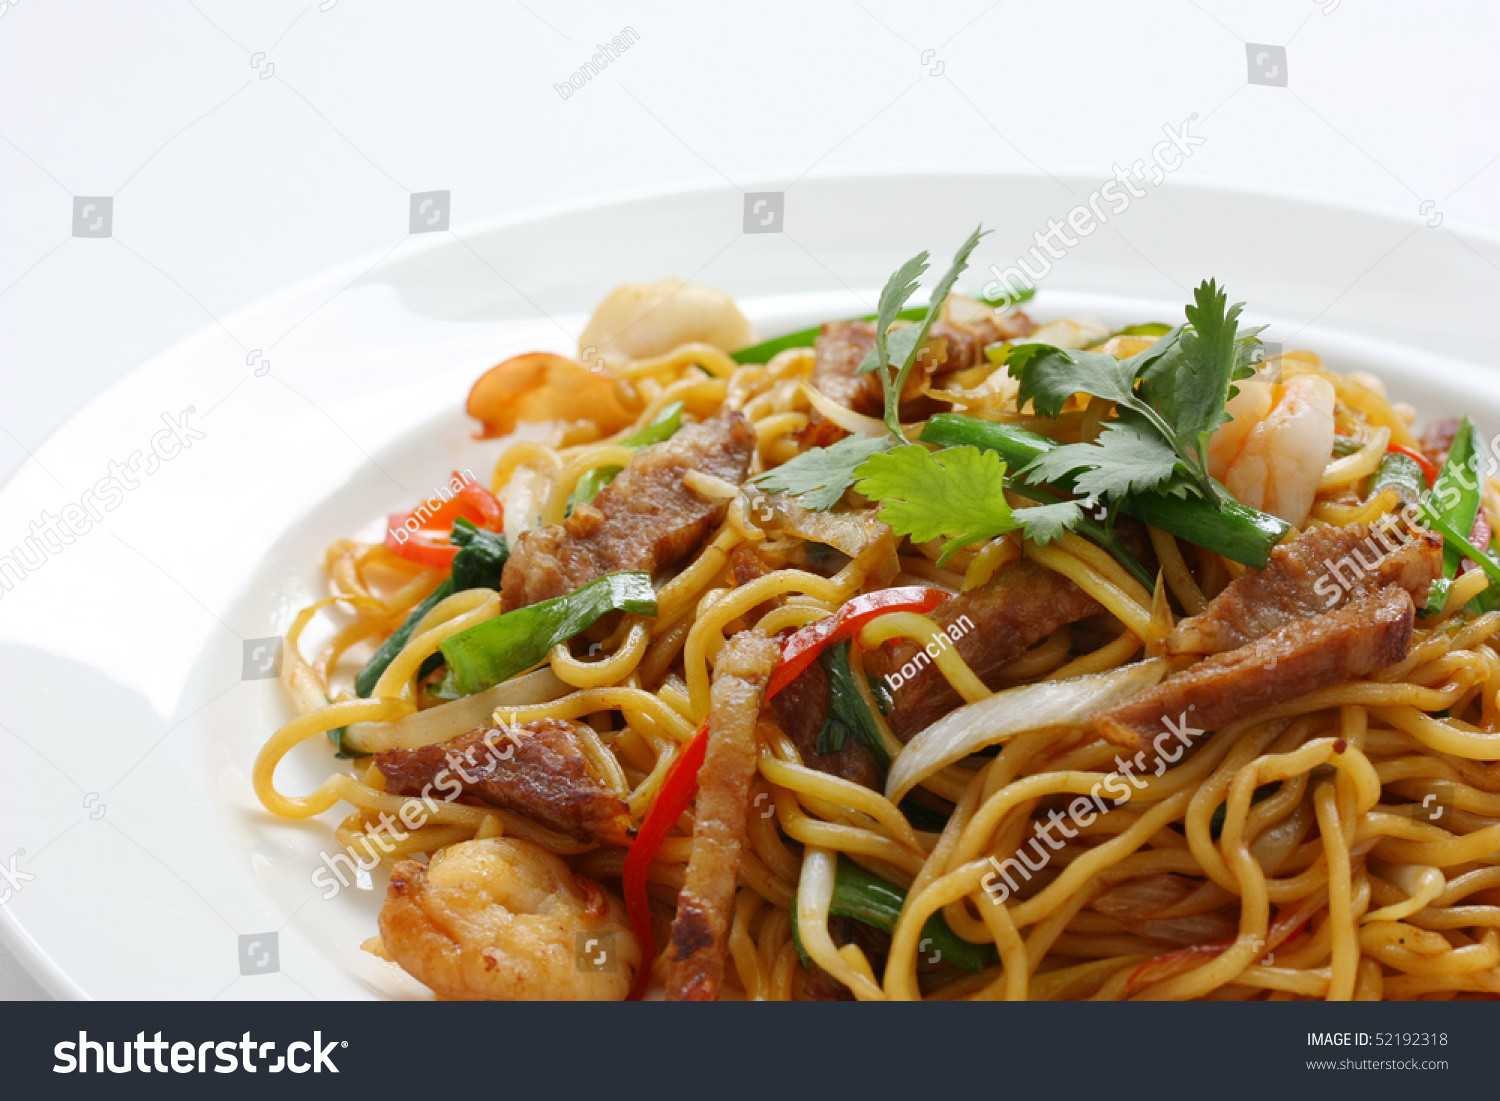 Chow Mein Stir Fry Noodles  Stir Fried Noodles Chow Mein Chinese Cuisine Stock